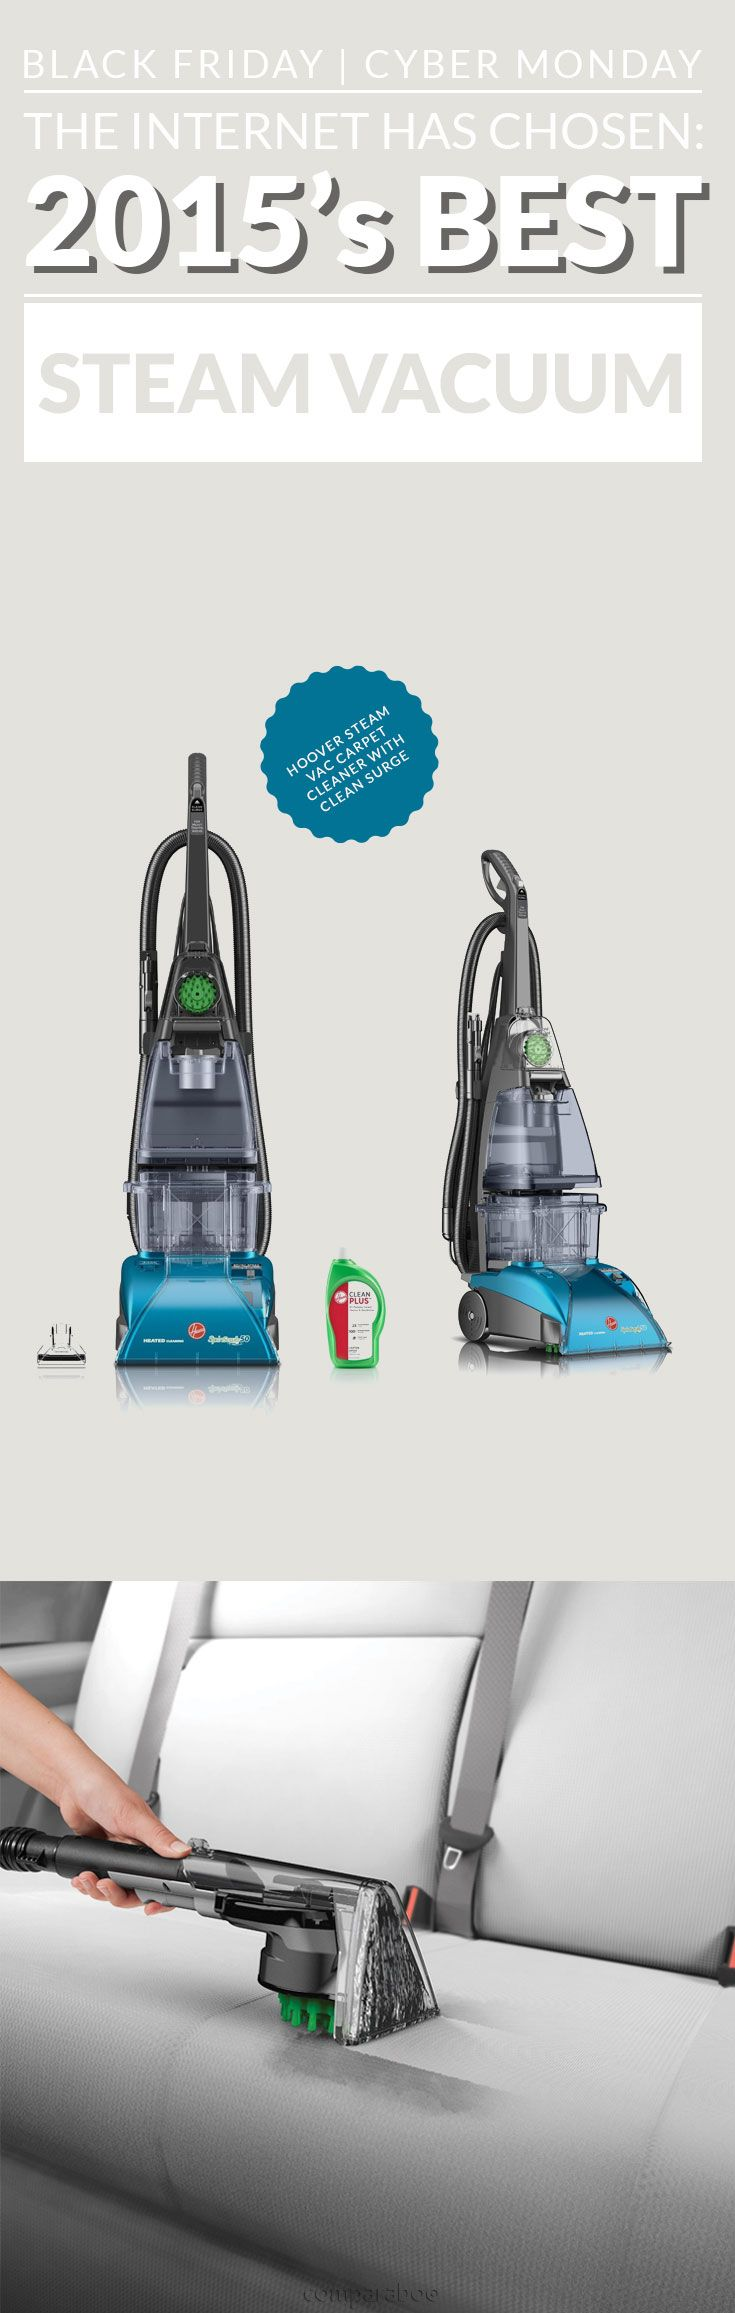 New: Mop and vacuum at the same time. Congratulations @hoover on the #1 steam vacuum www.comparaboo.com | @comparaboo